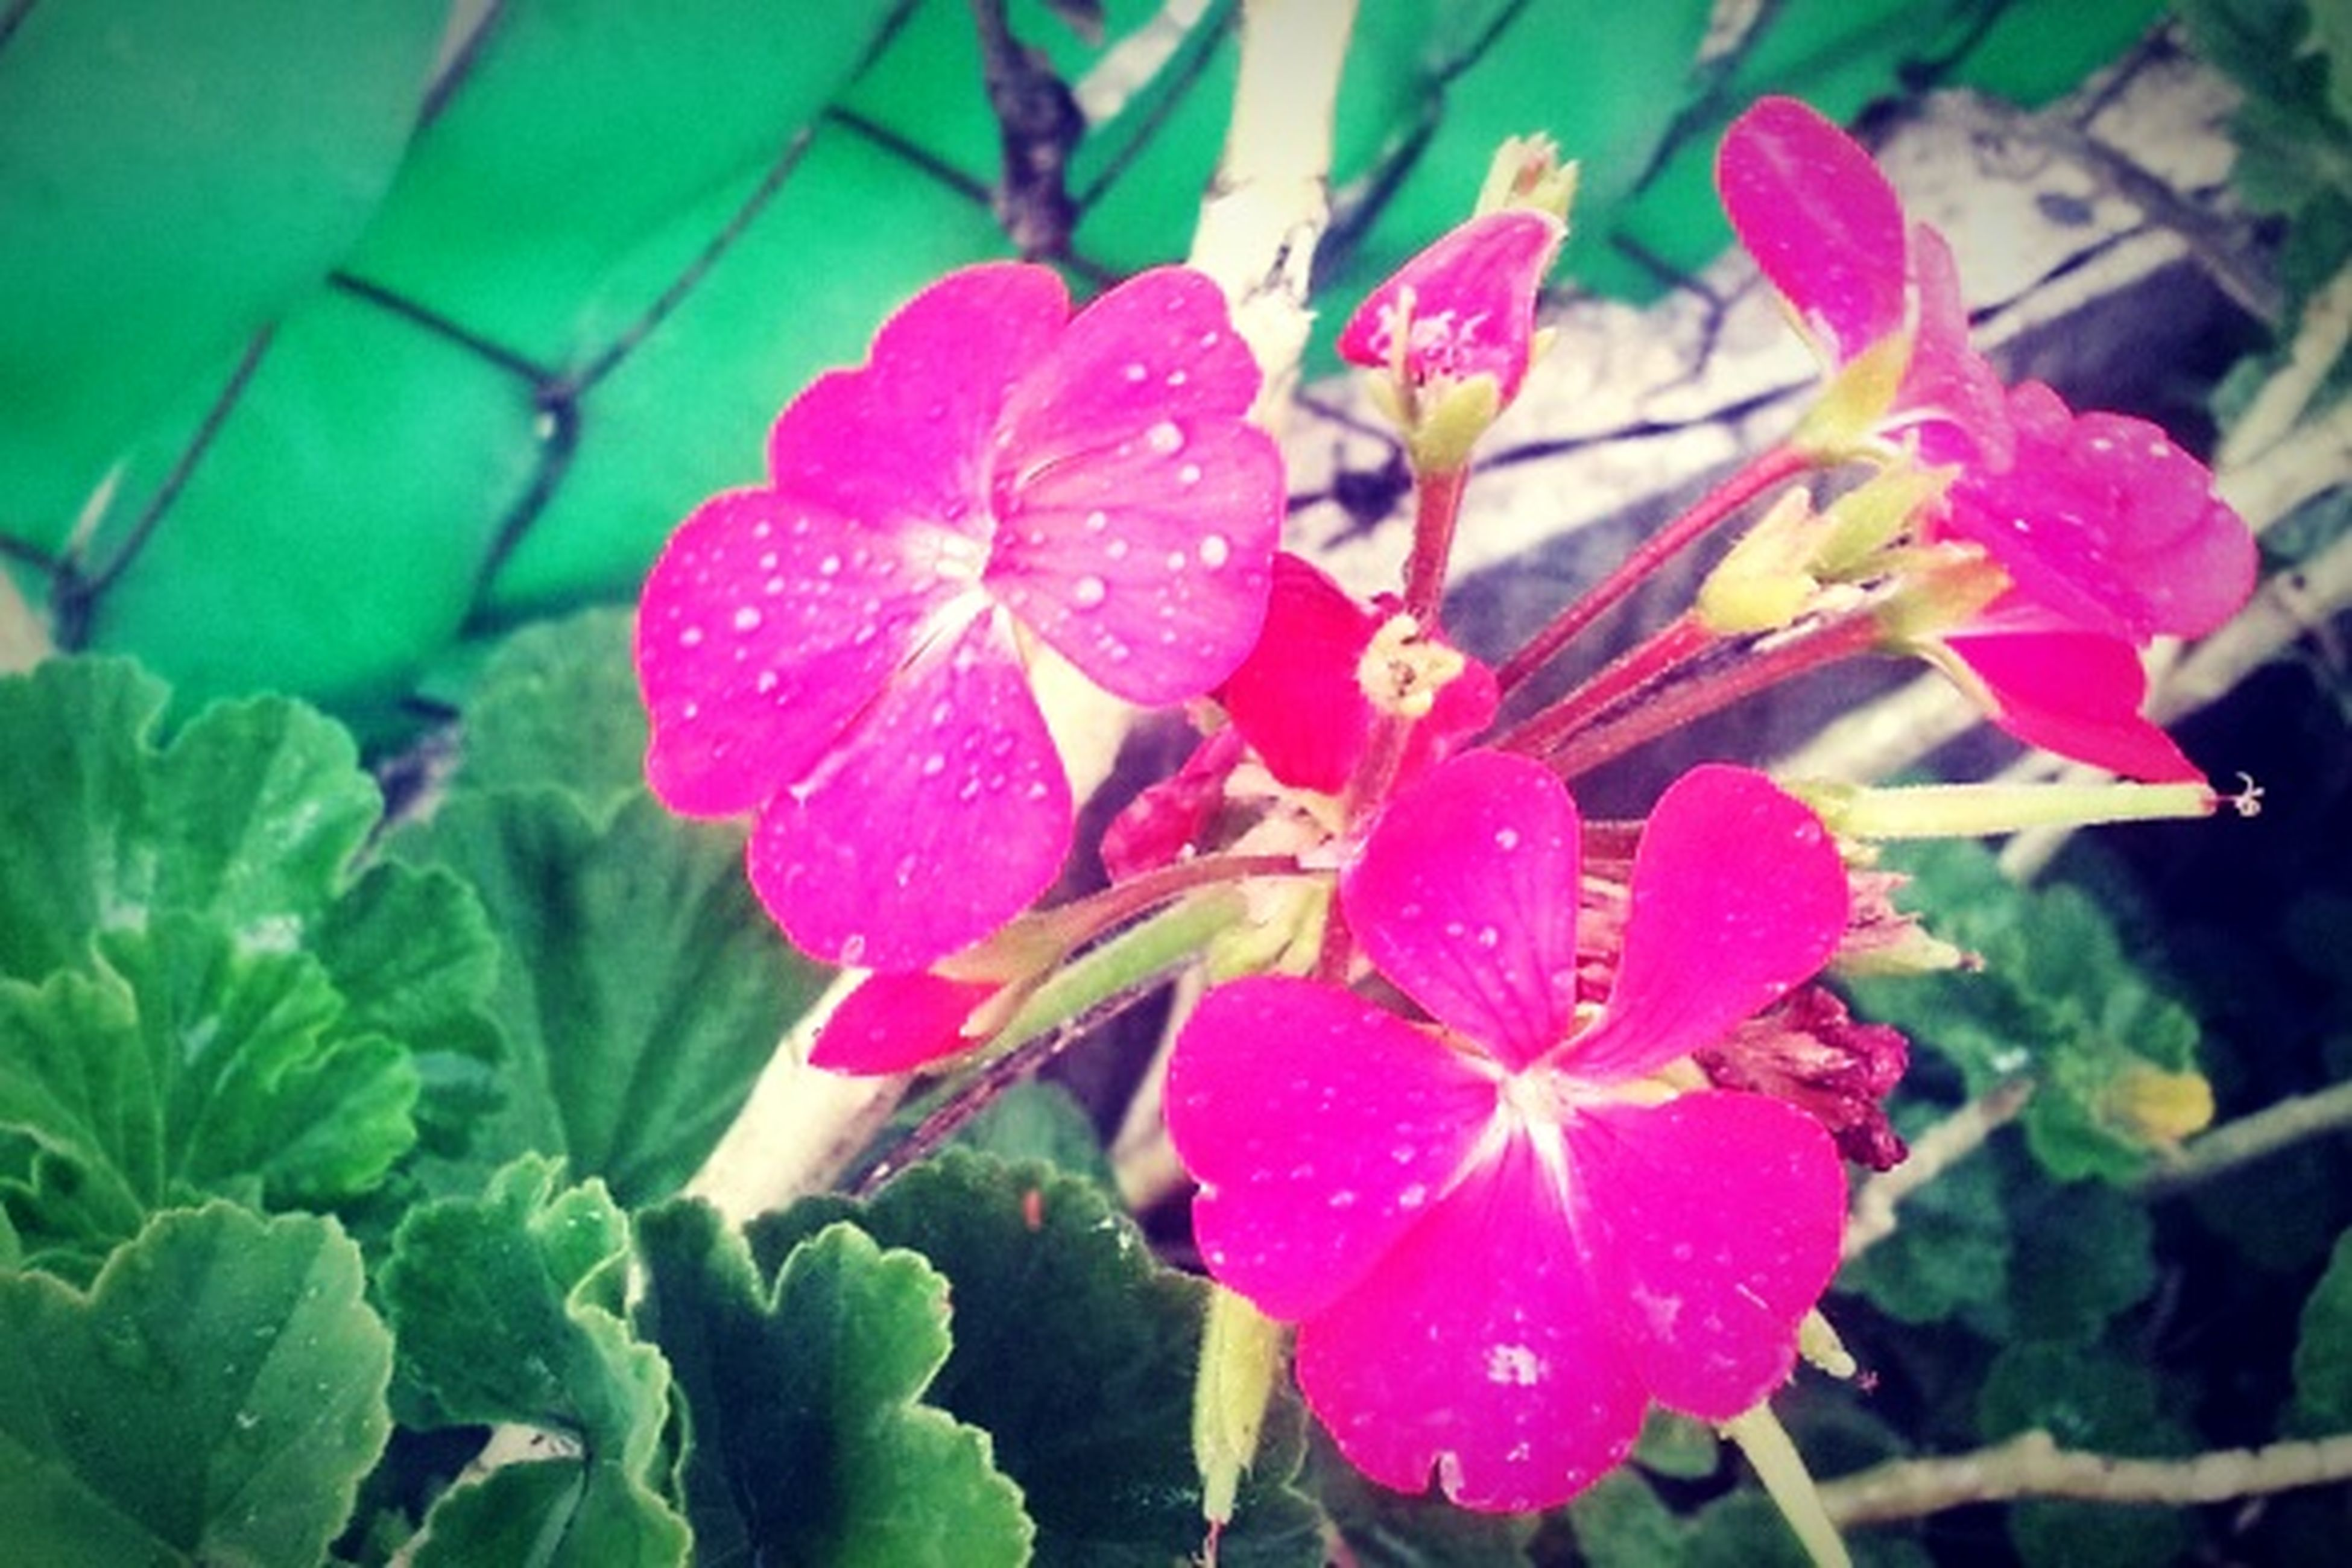 flower, freshness, pink color, fragility, growth, drop, wet, petal, water, leaf, plant, beauty in nature, close-up, nature, flower head, blooming, focus on foreground, raindrop, rain, day